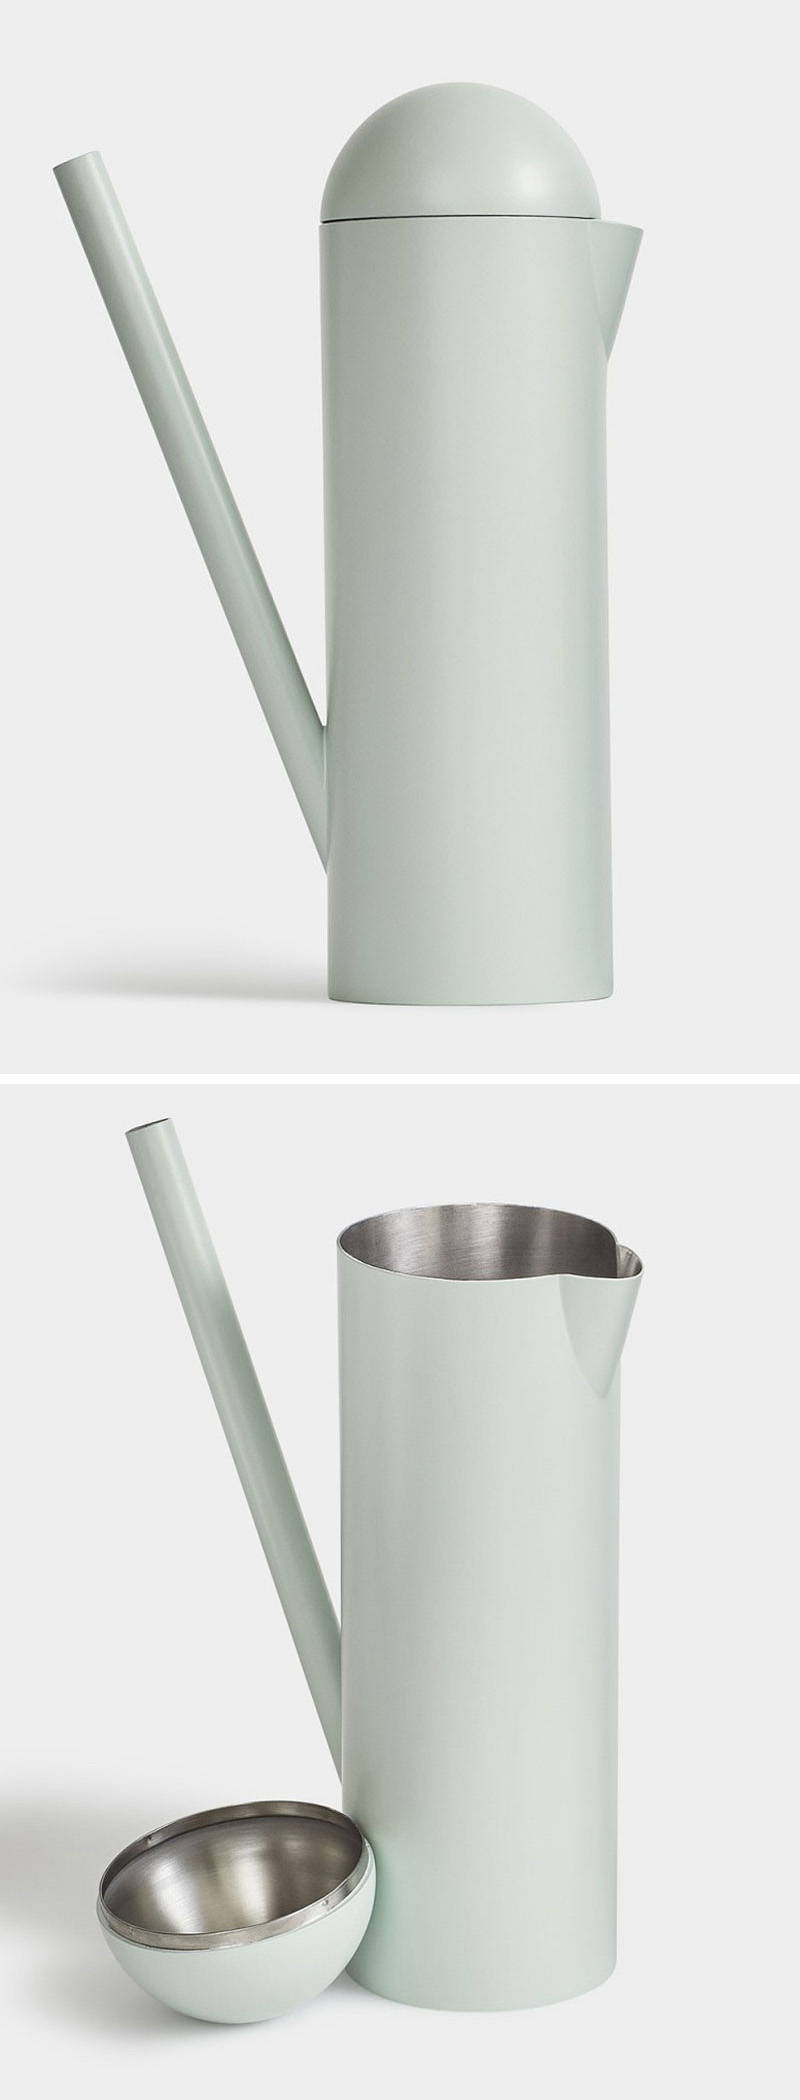 This modern mint colored watering can can also be used as a drink pitcher simply by removing the lid and using the long spout as a handle. #Gardening #WateringCans #ModernWateringCan #Plants